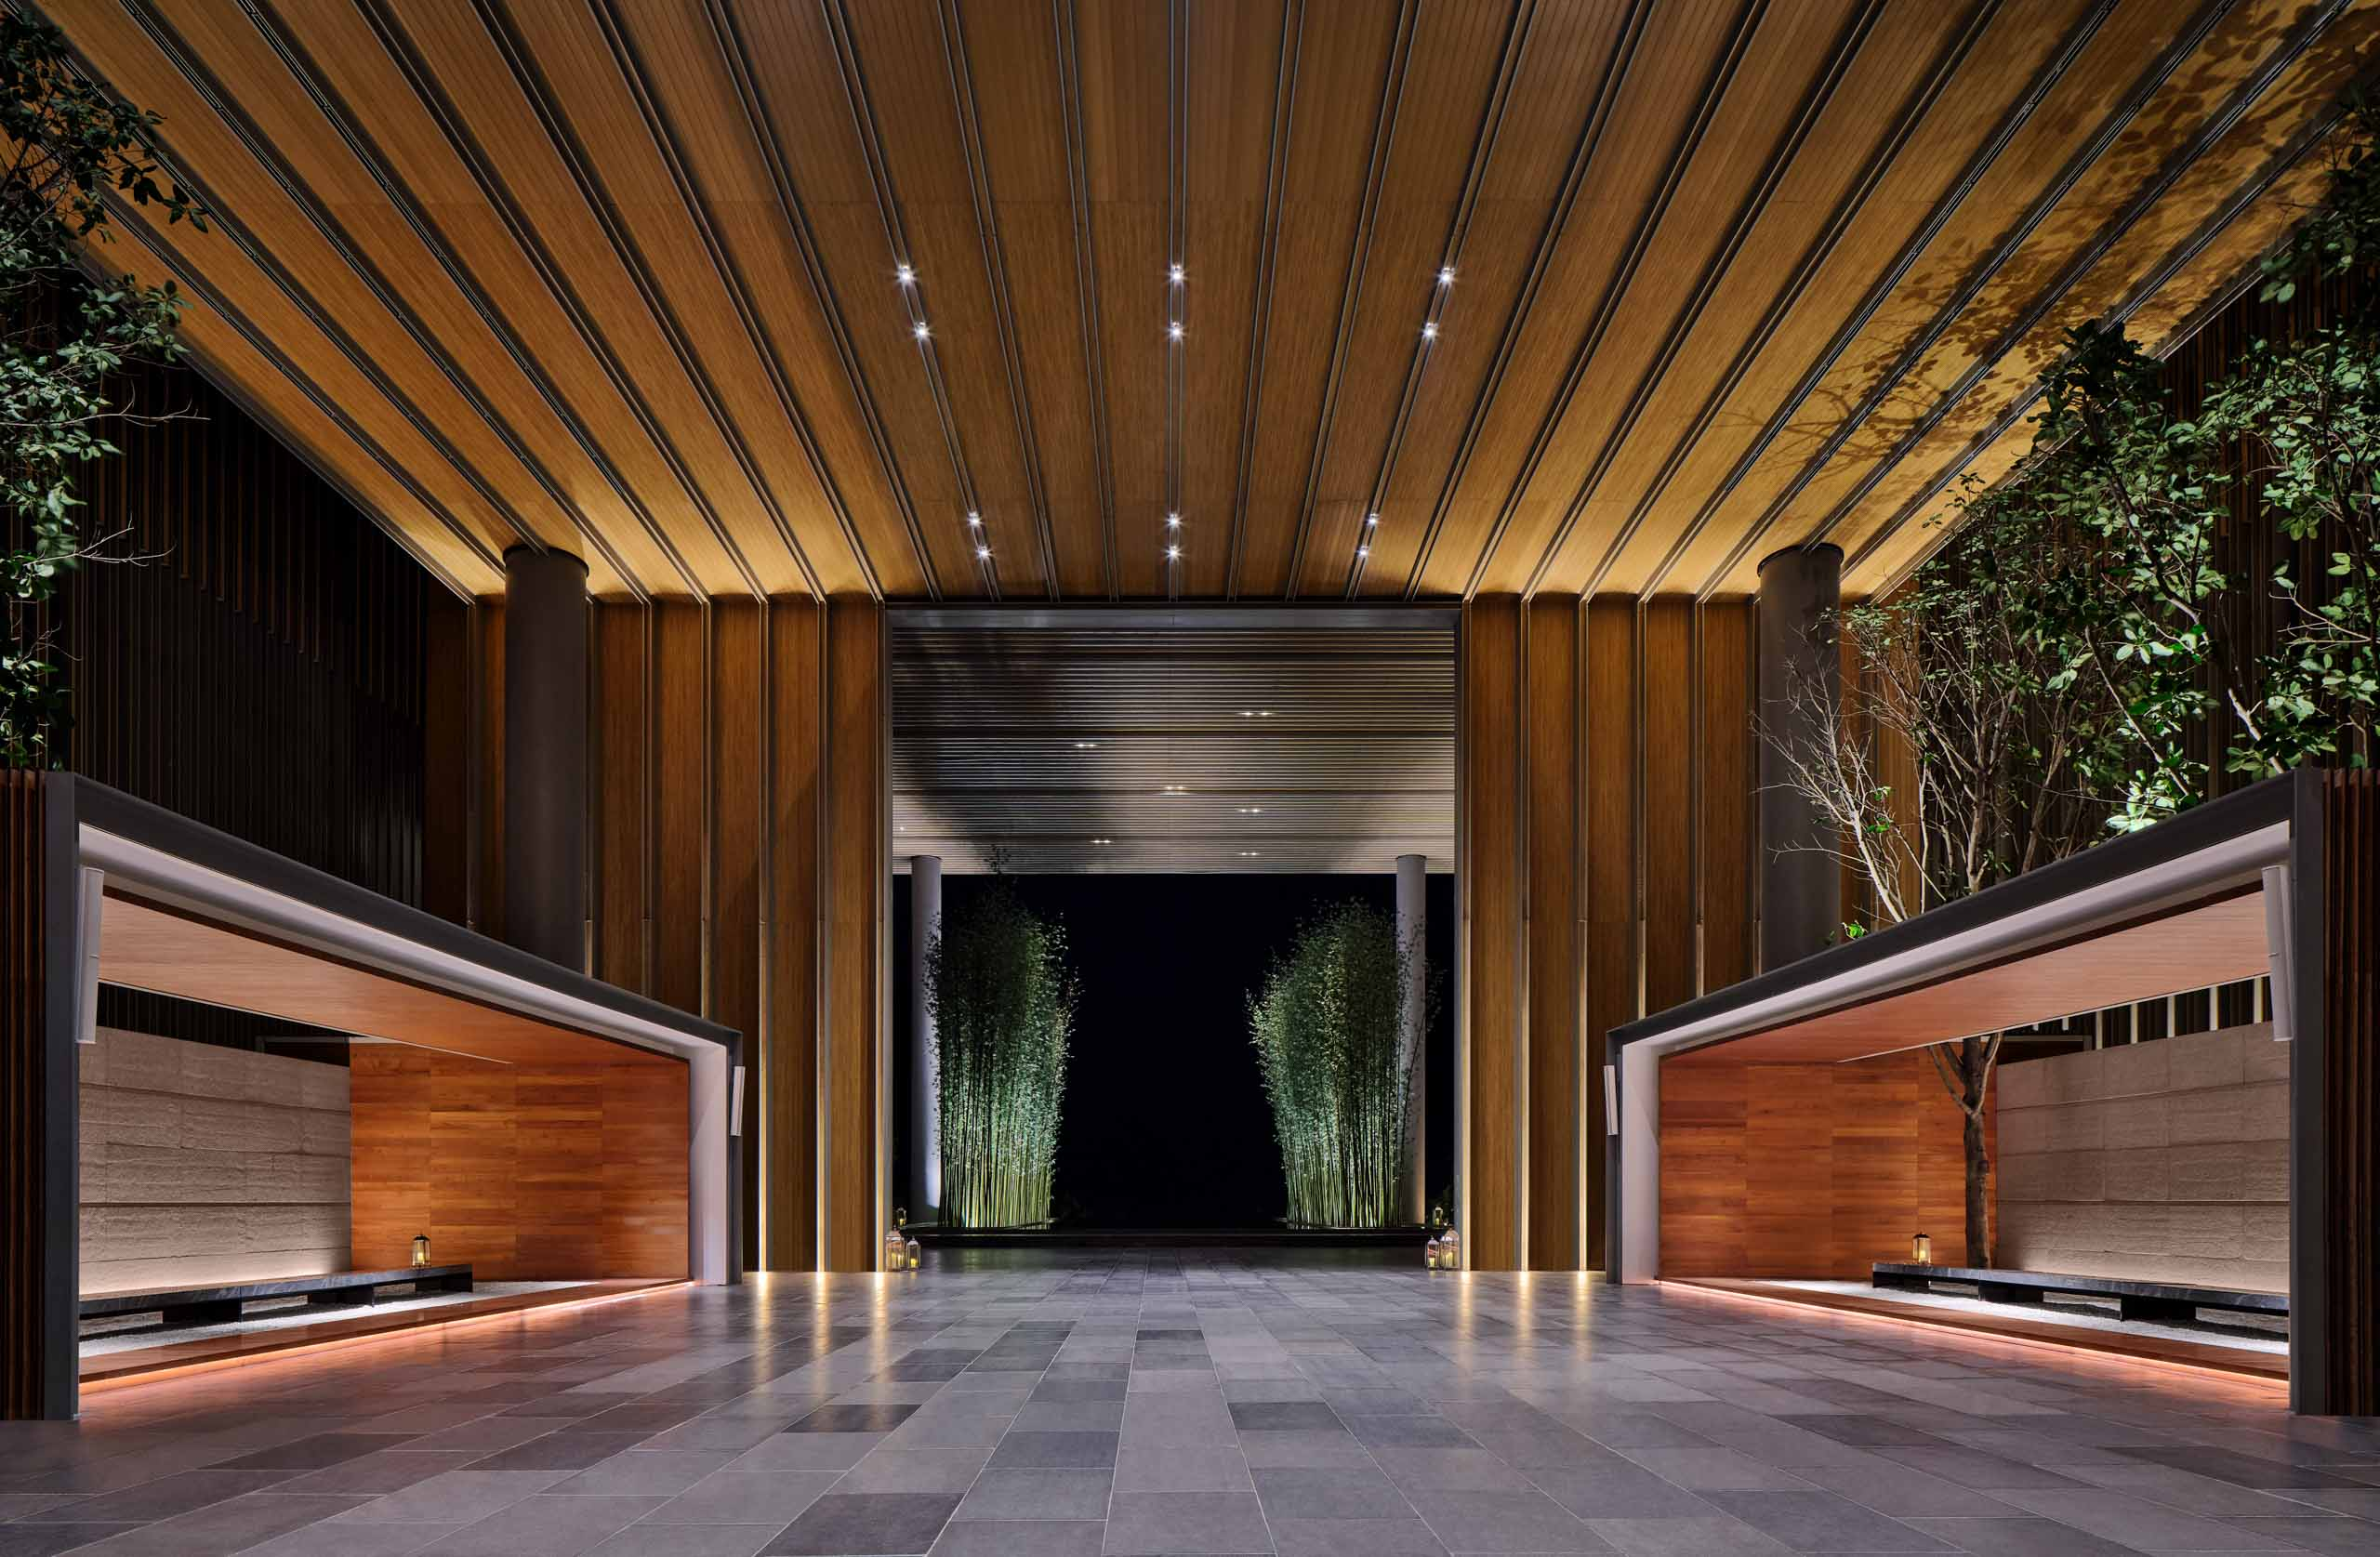 architectural photography of the main entrance at edition hotel in sanya china with wooden ceilings and concrete floor modern interior design